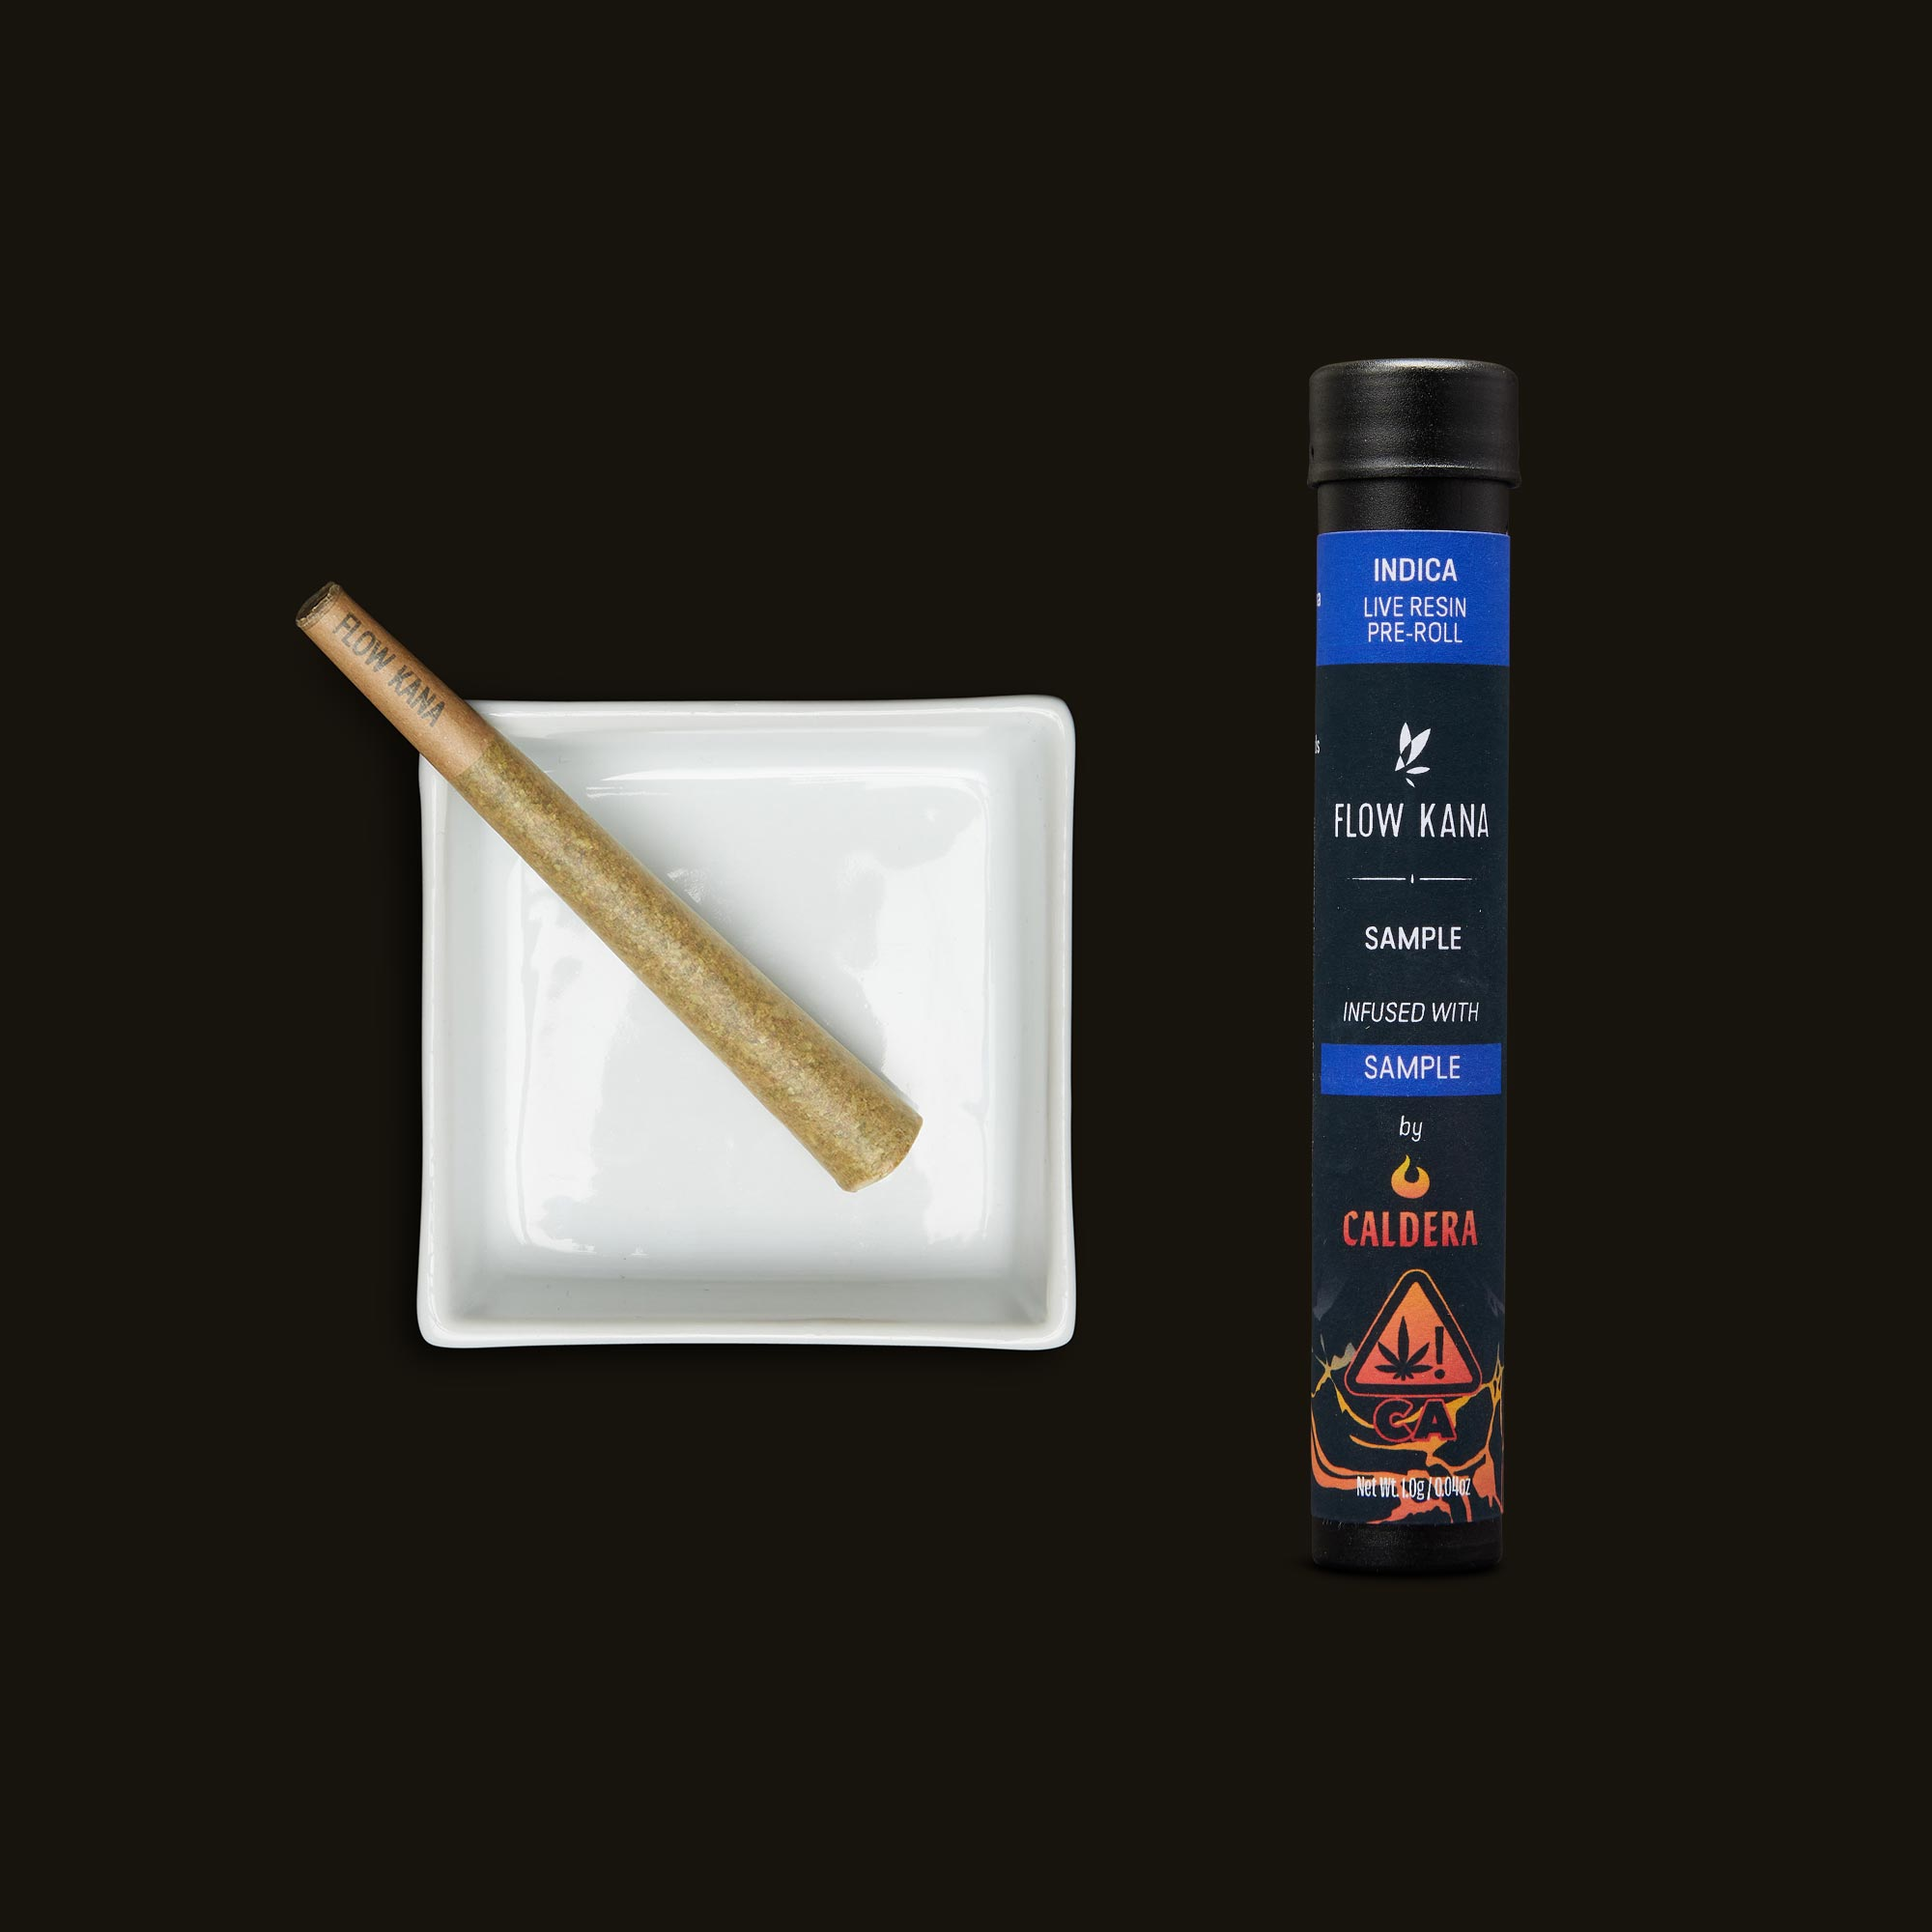 Flow Kana Indica Infused Pre-Rolls